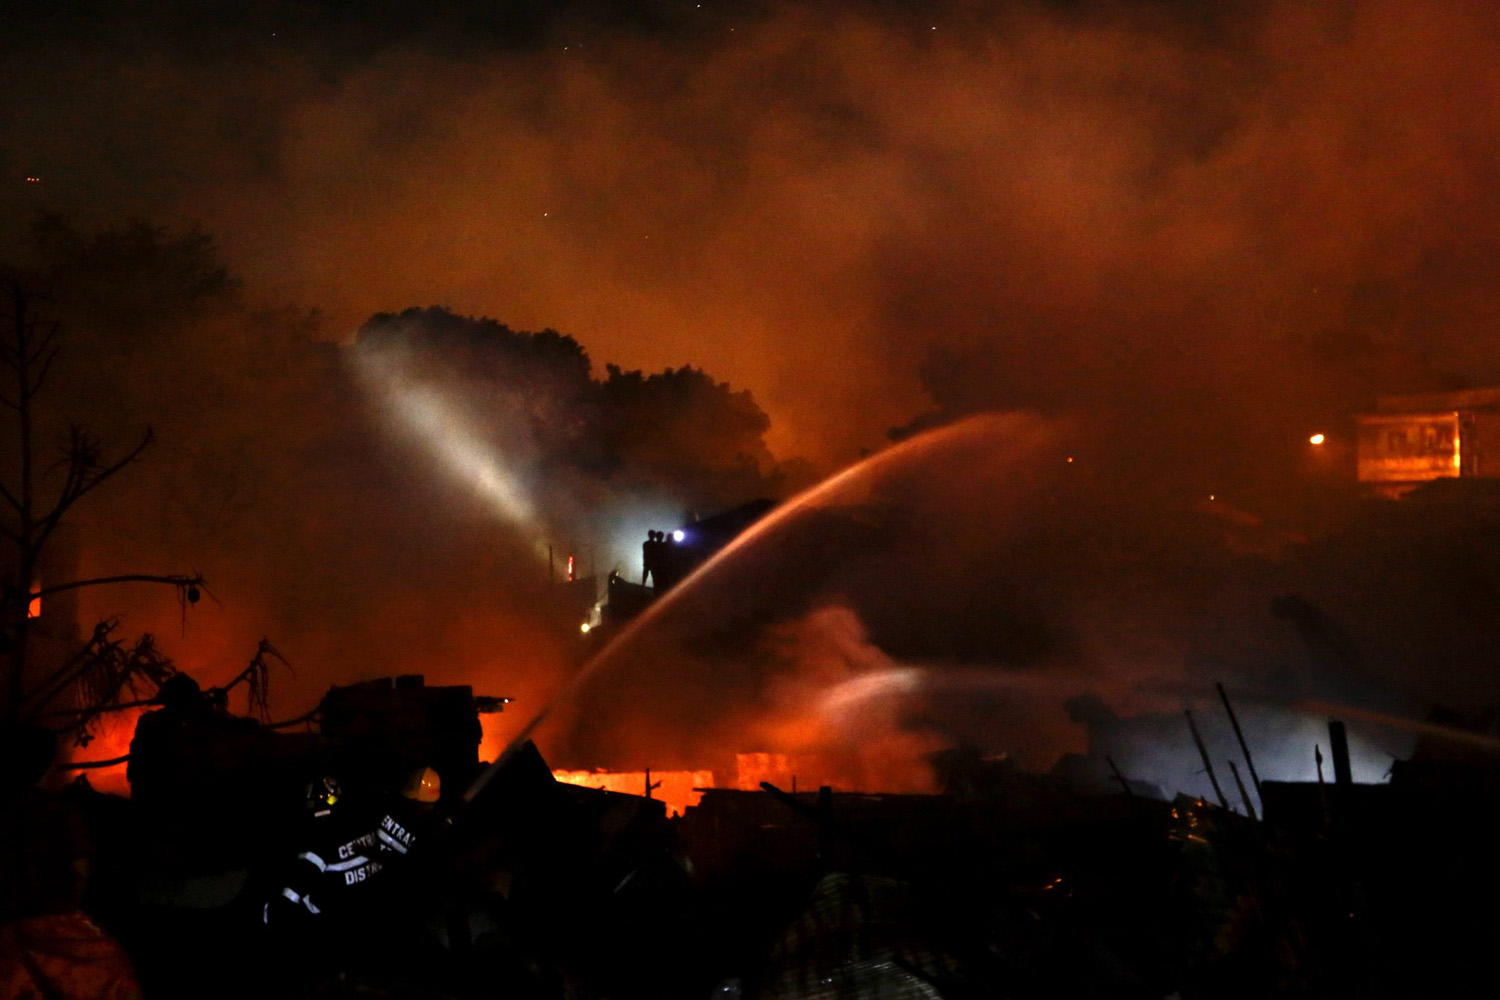 May 6, 2014. Filipino firemen use a water cannon to extinguish a fire in a residential slum area in Quezon City, east of Manila, Philippines.